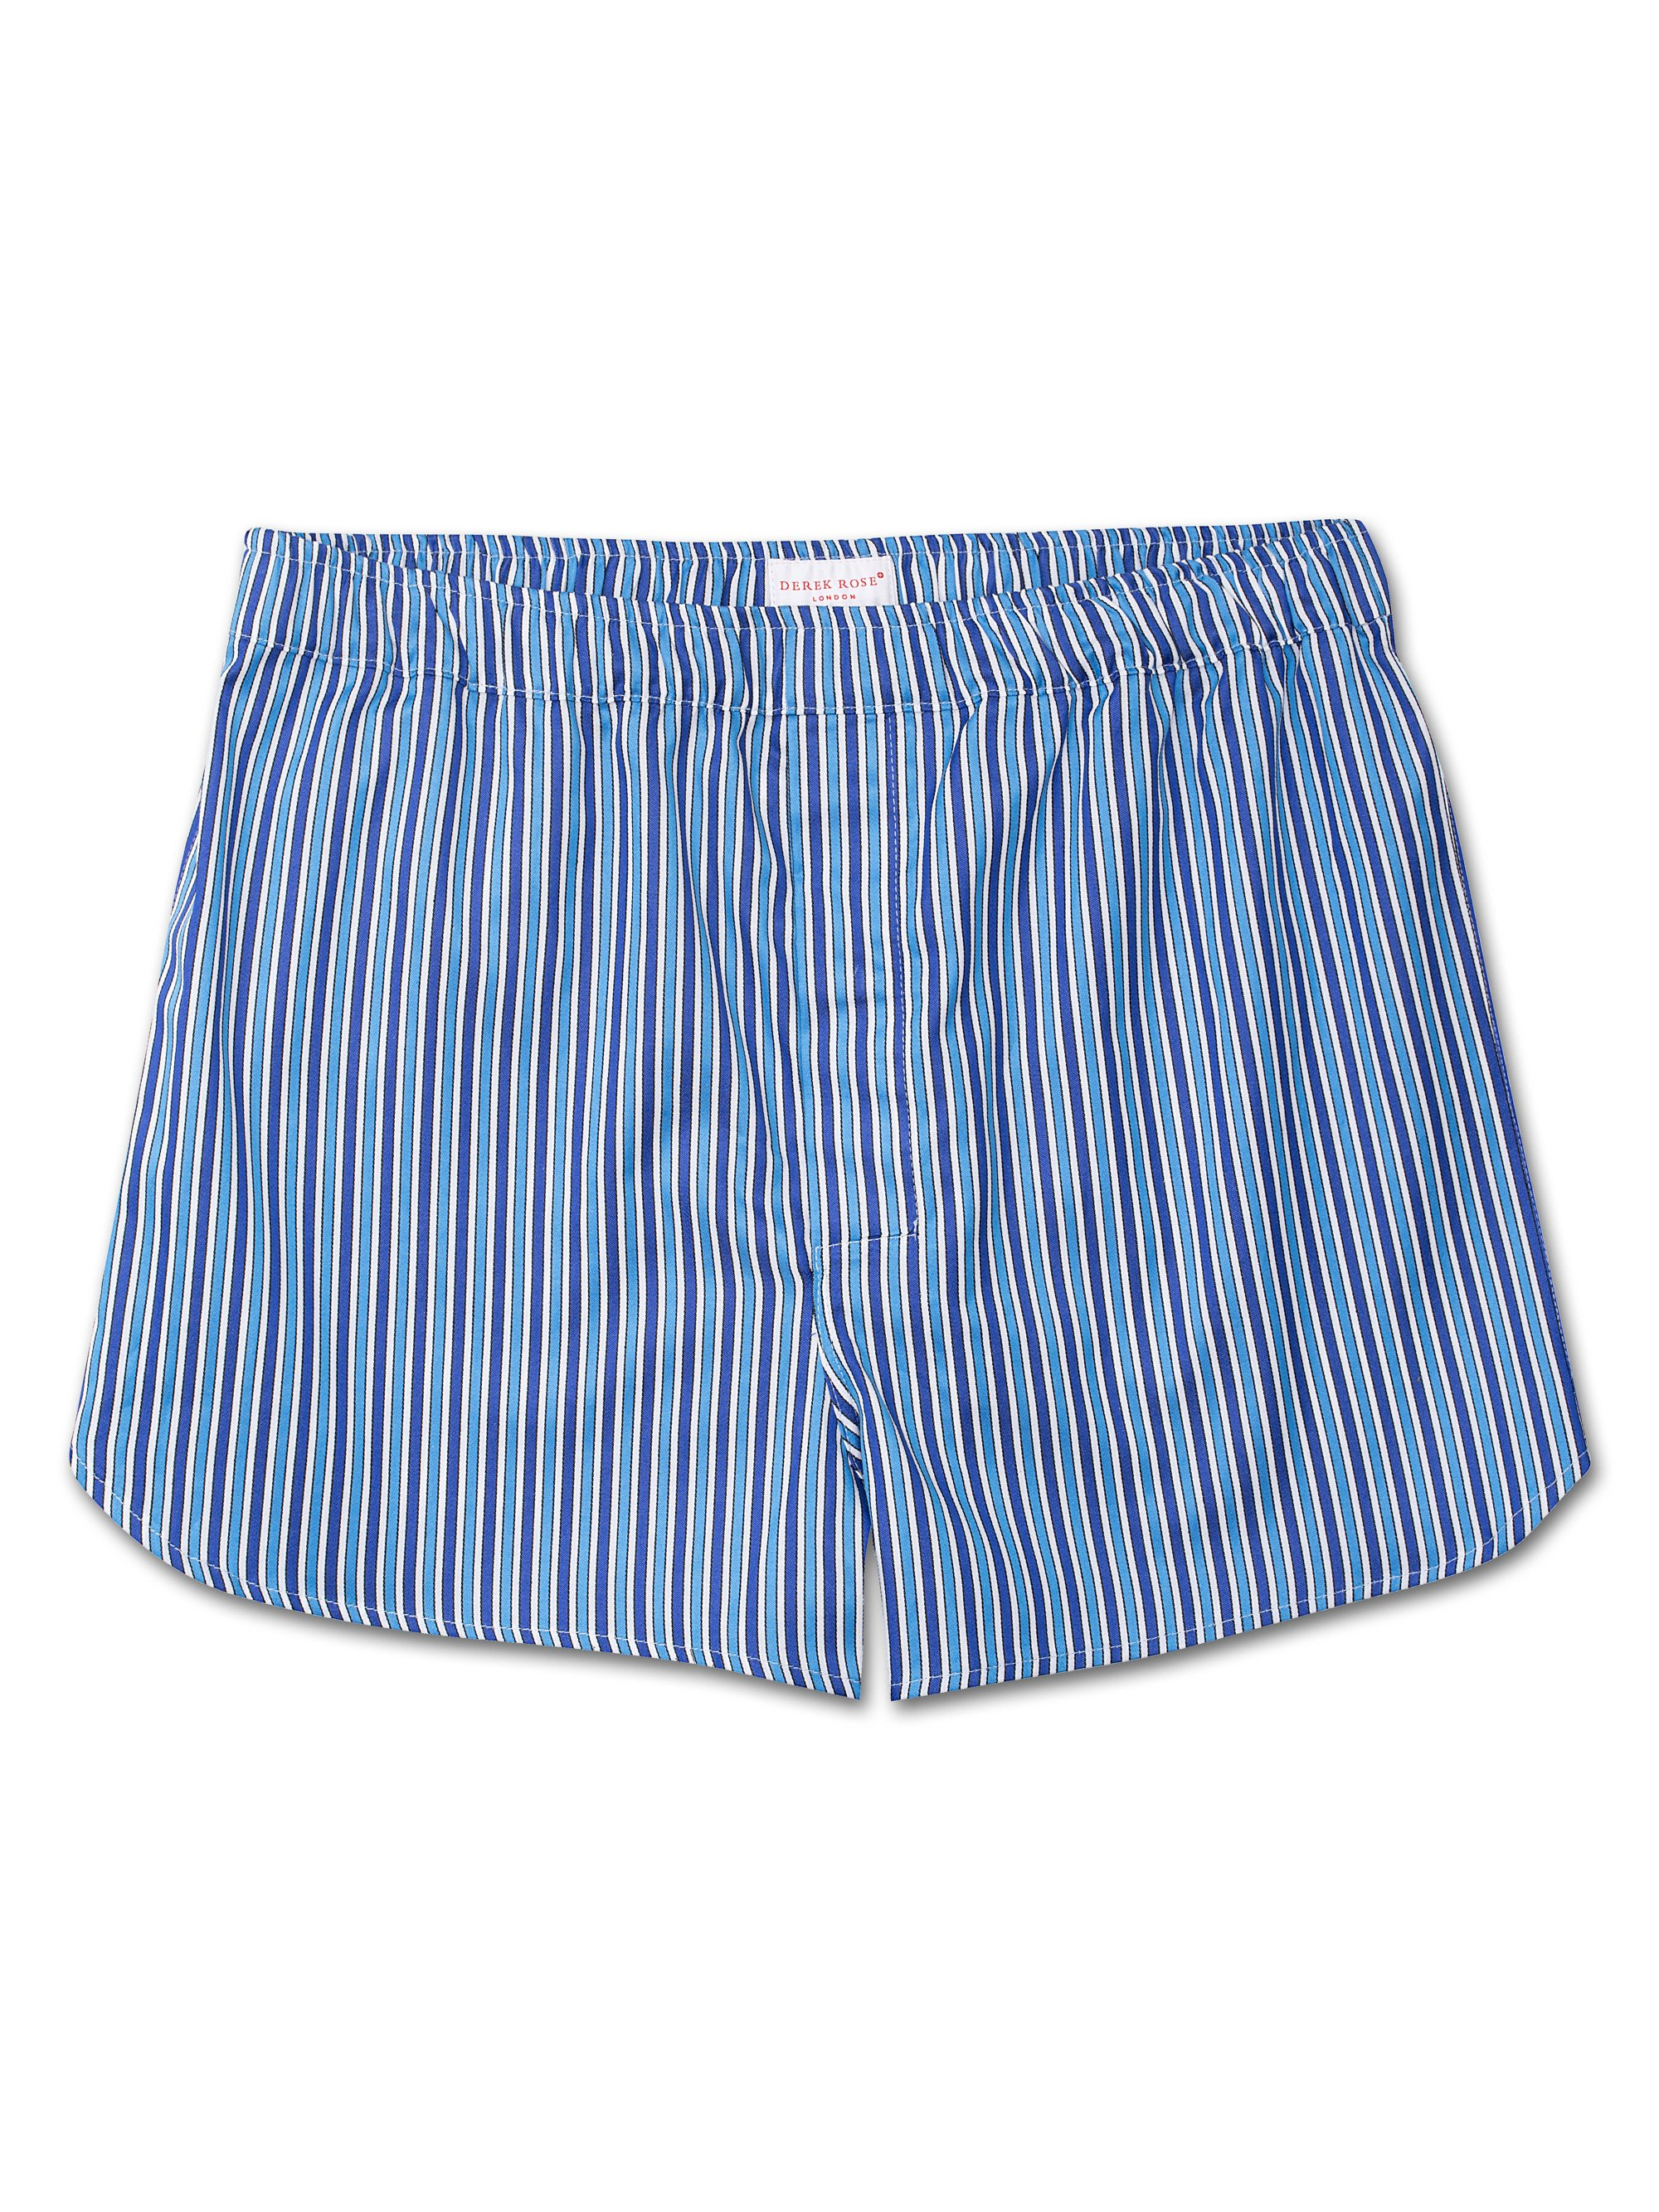 Men's Modern Fit Boxer Shorts Royal 197 Cotton Satin Stripe Blue